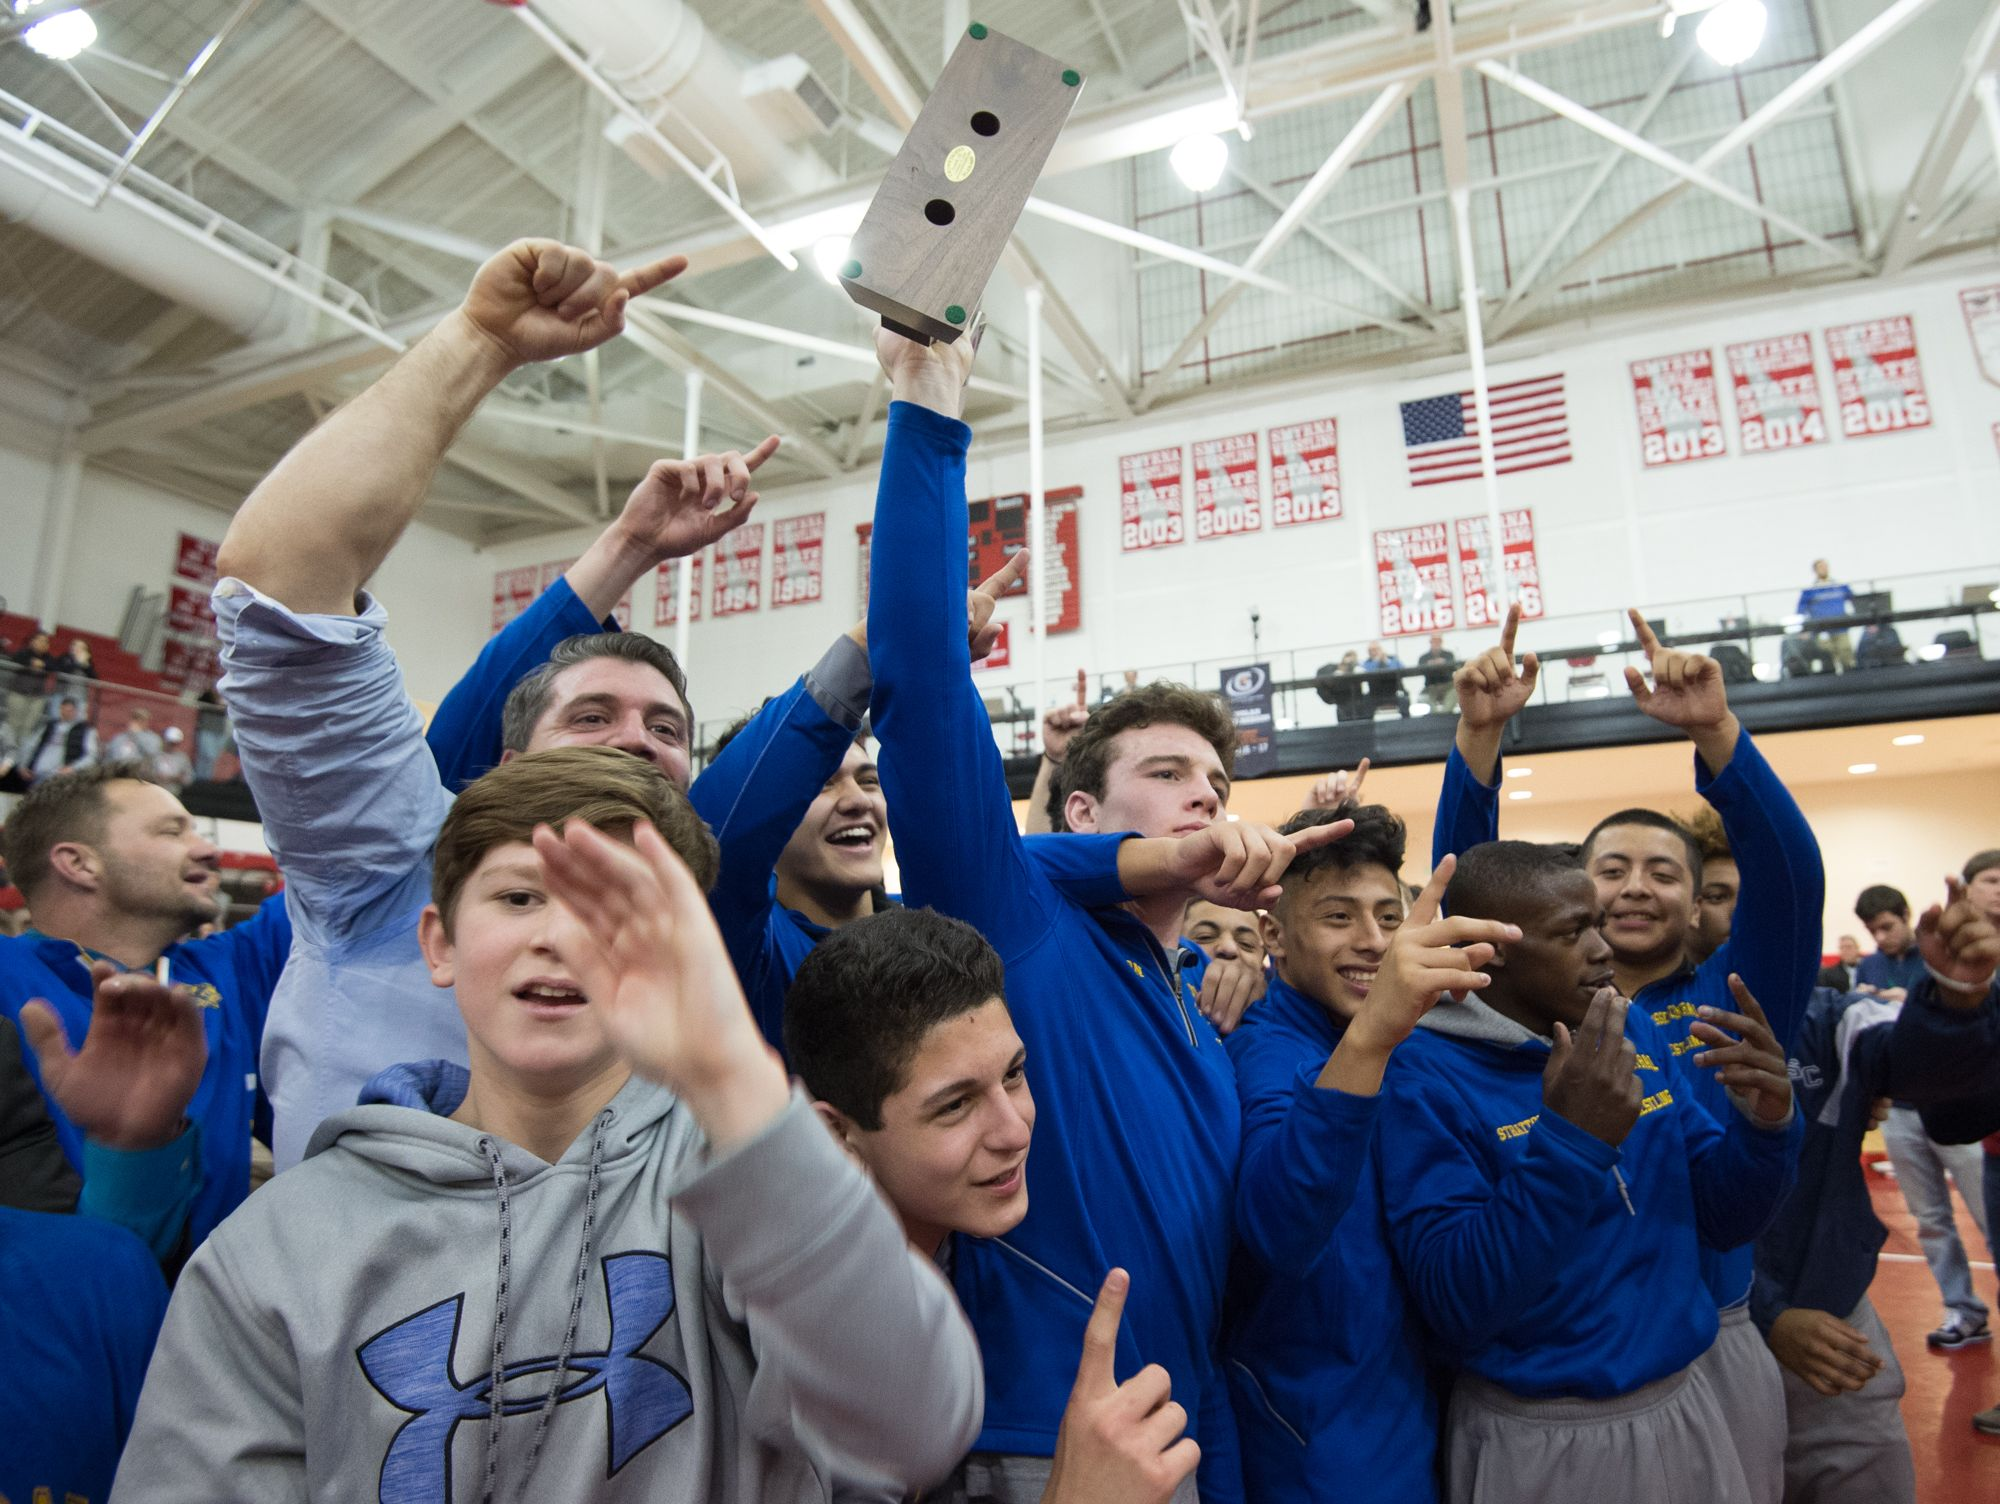 Sussex Central celebrates after defeating Smyrna in the DIAA Dual Meet Wrestling State Championship at Smyrna High School.